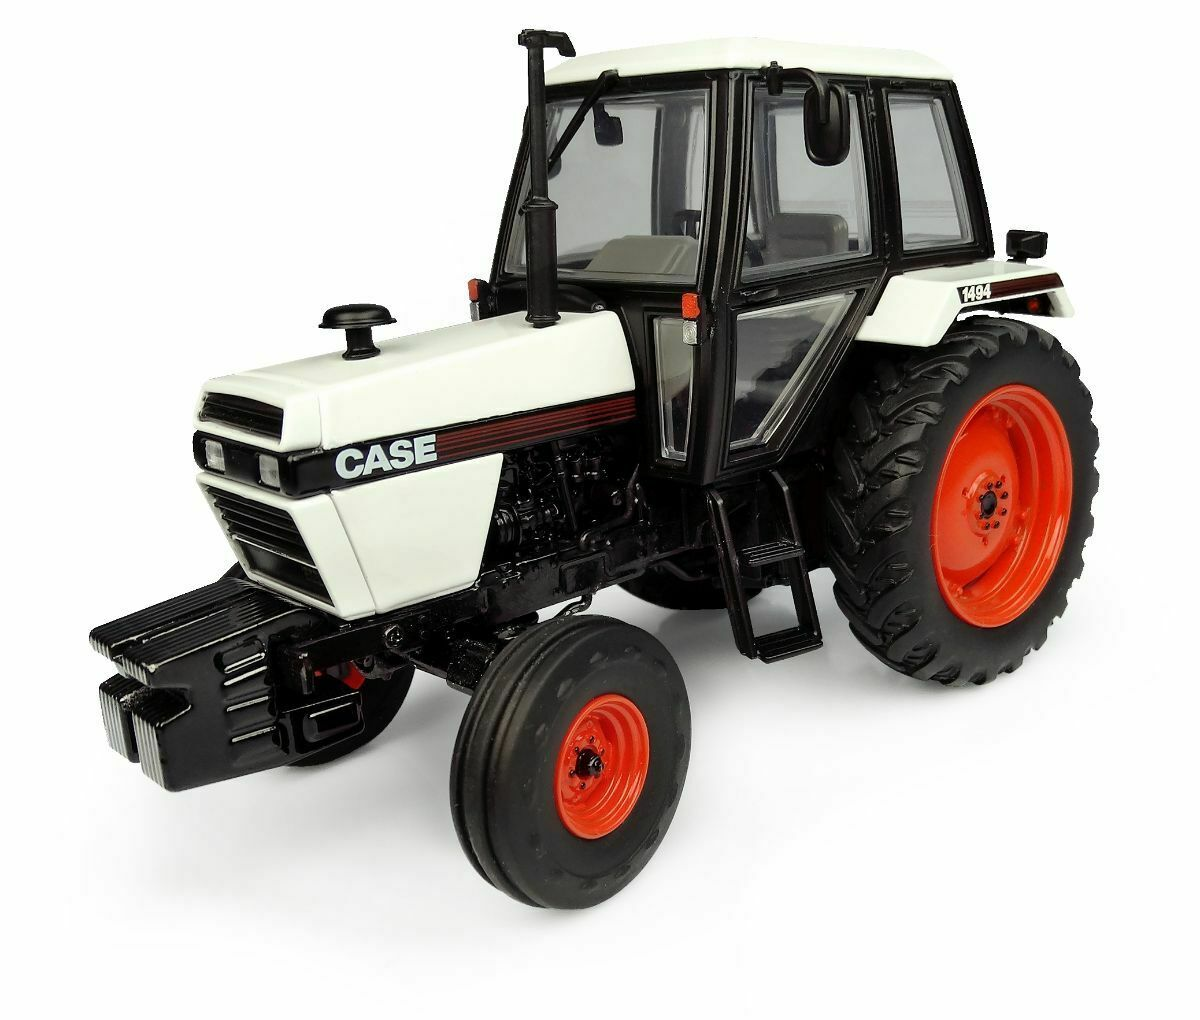 UH CASE 1494 2WD TRACTOR 1 32 SCALE - NEW IN